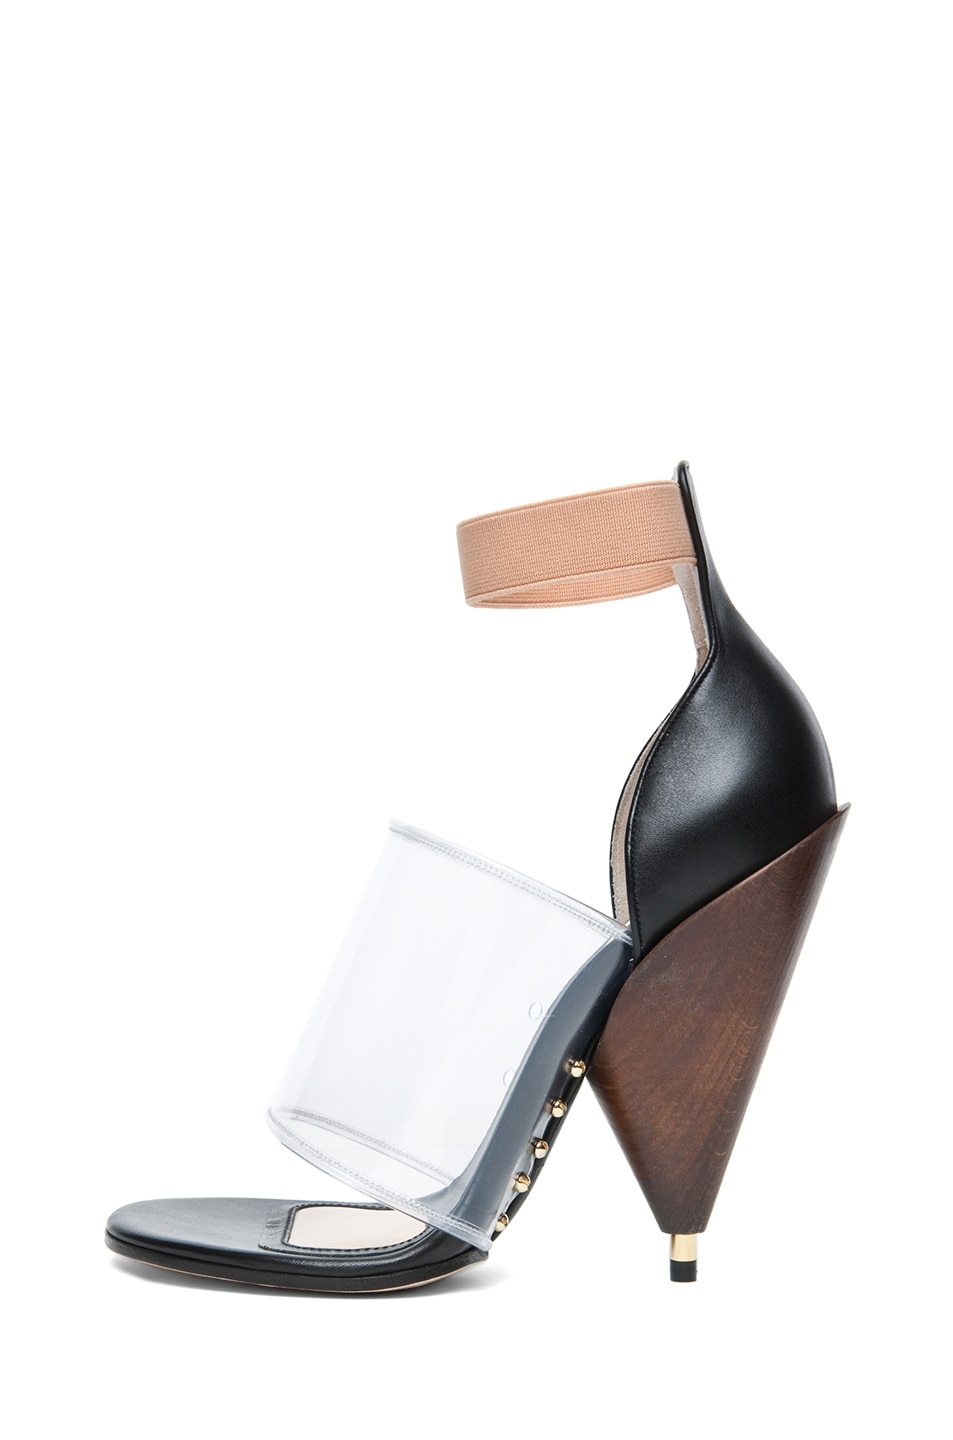 Image 1 of GIVENCHY Albertina Podium Heel in Black Multi